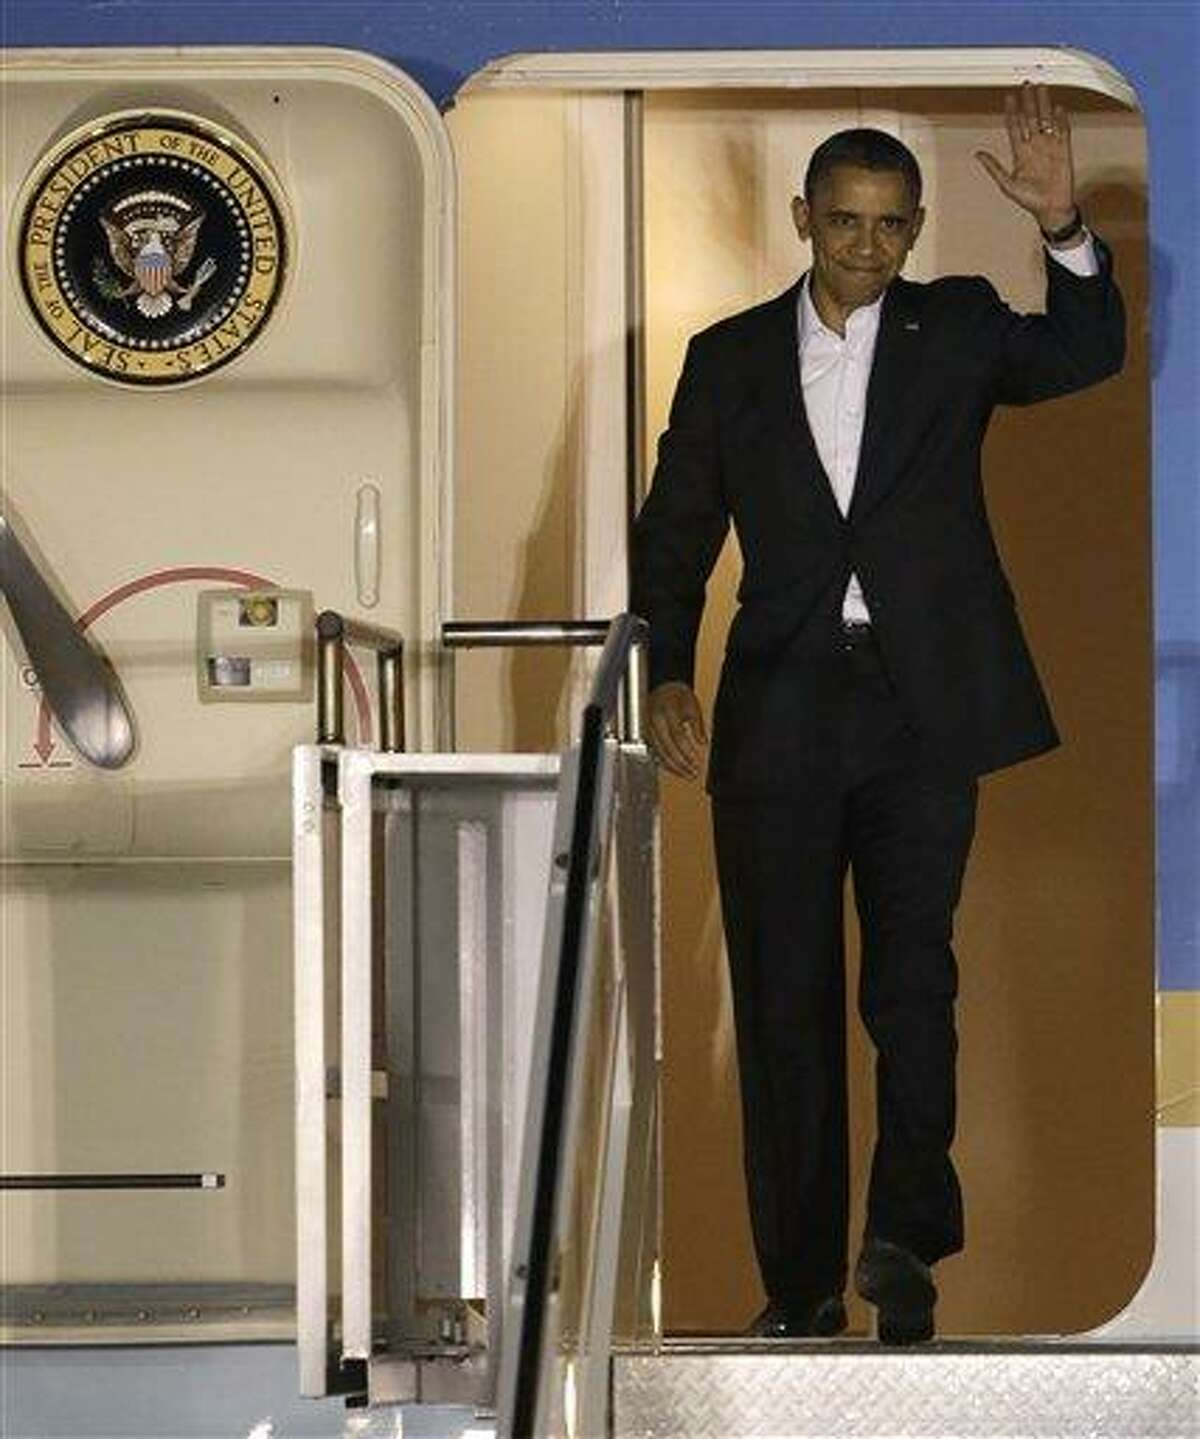 President Barack Obama waves as he walks down the stairs of Air Force One upon his arrival at Palm Beach International Airport. AP Photo/Wilfredo Lee